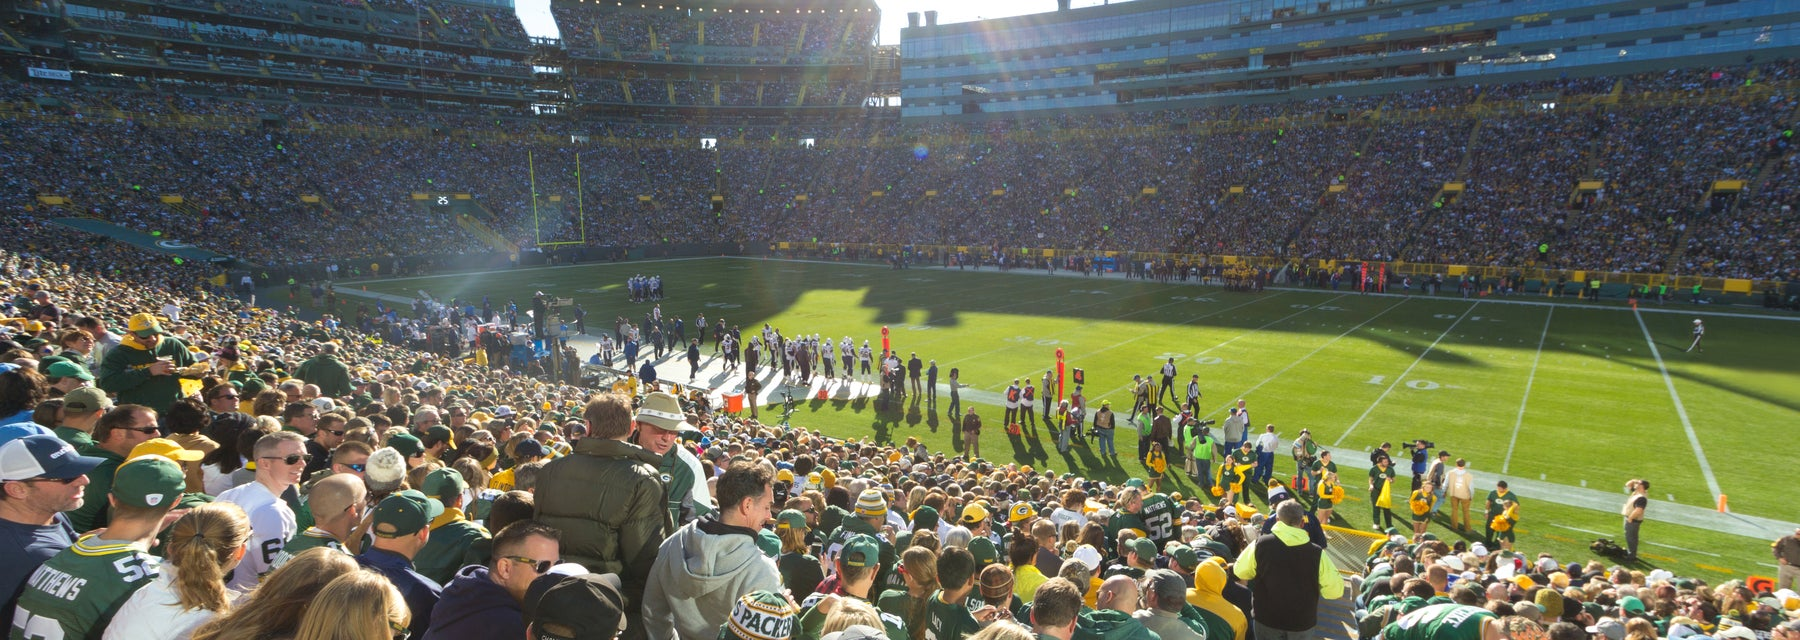 Seat view from Lower Level Sideline